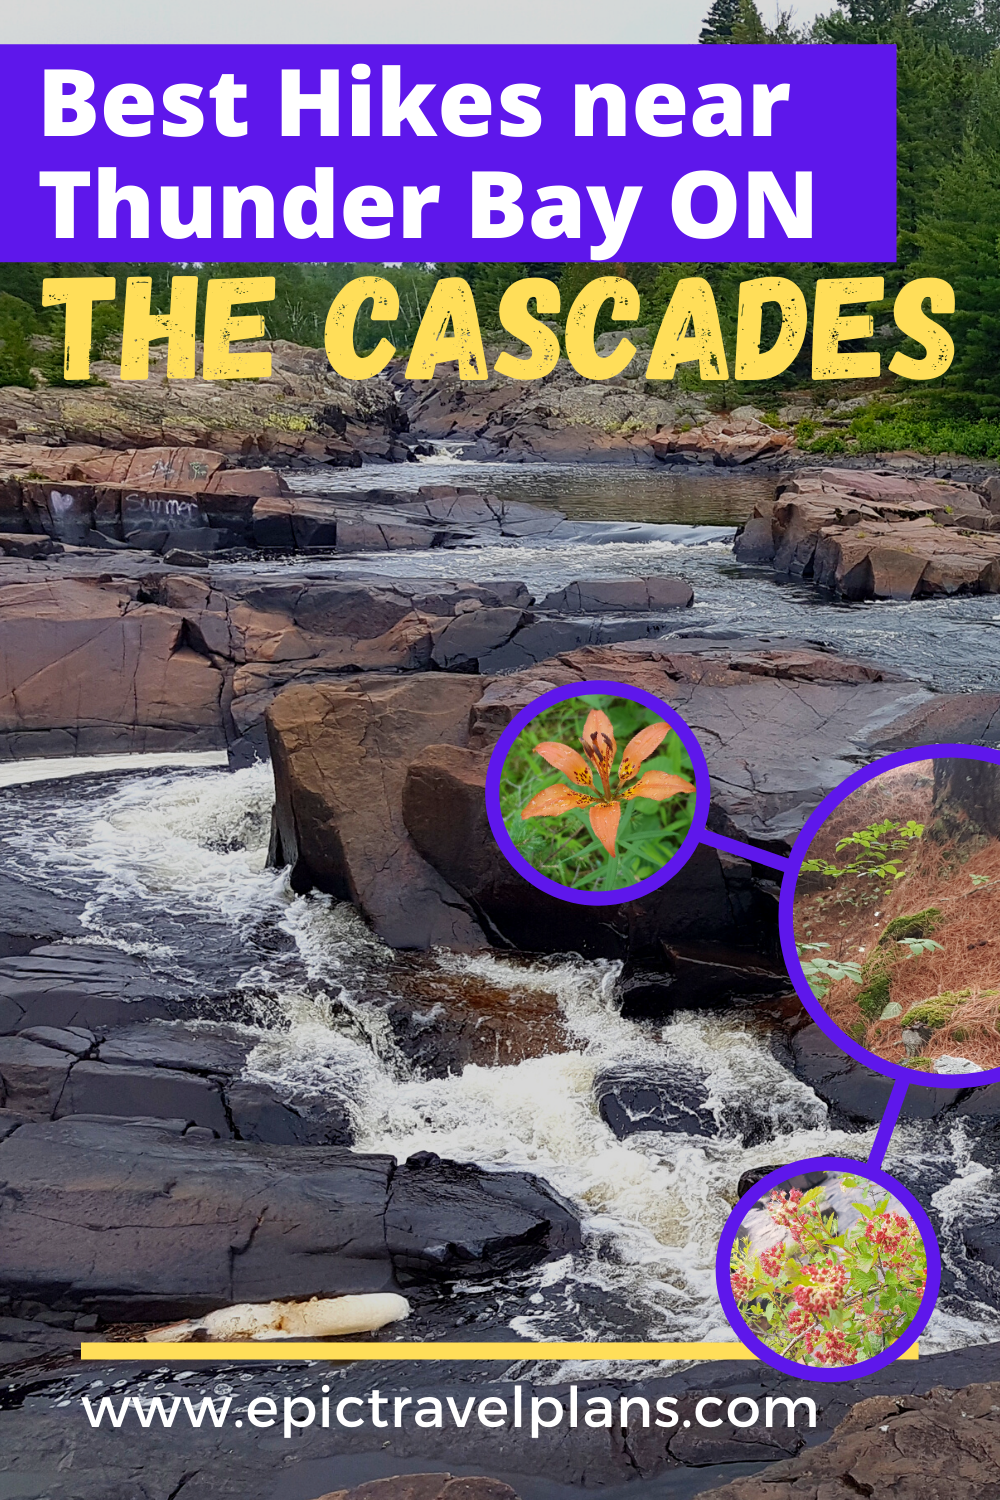 Cascades hiking trails near Thunder Bay Ontario